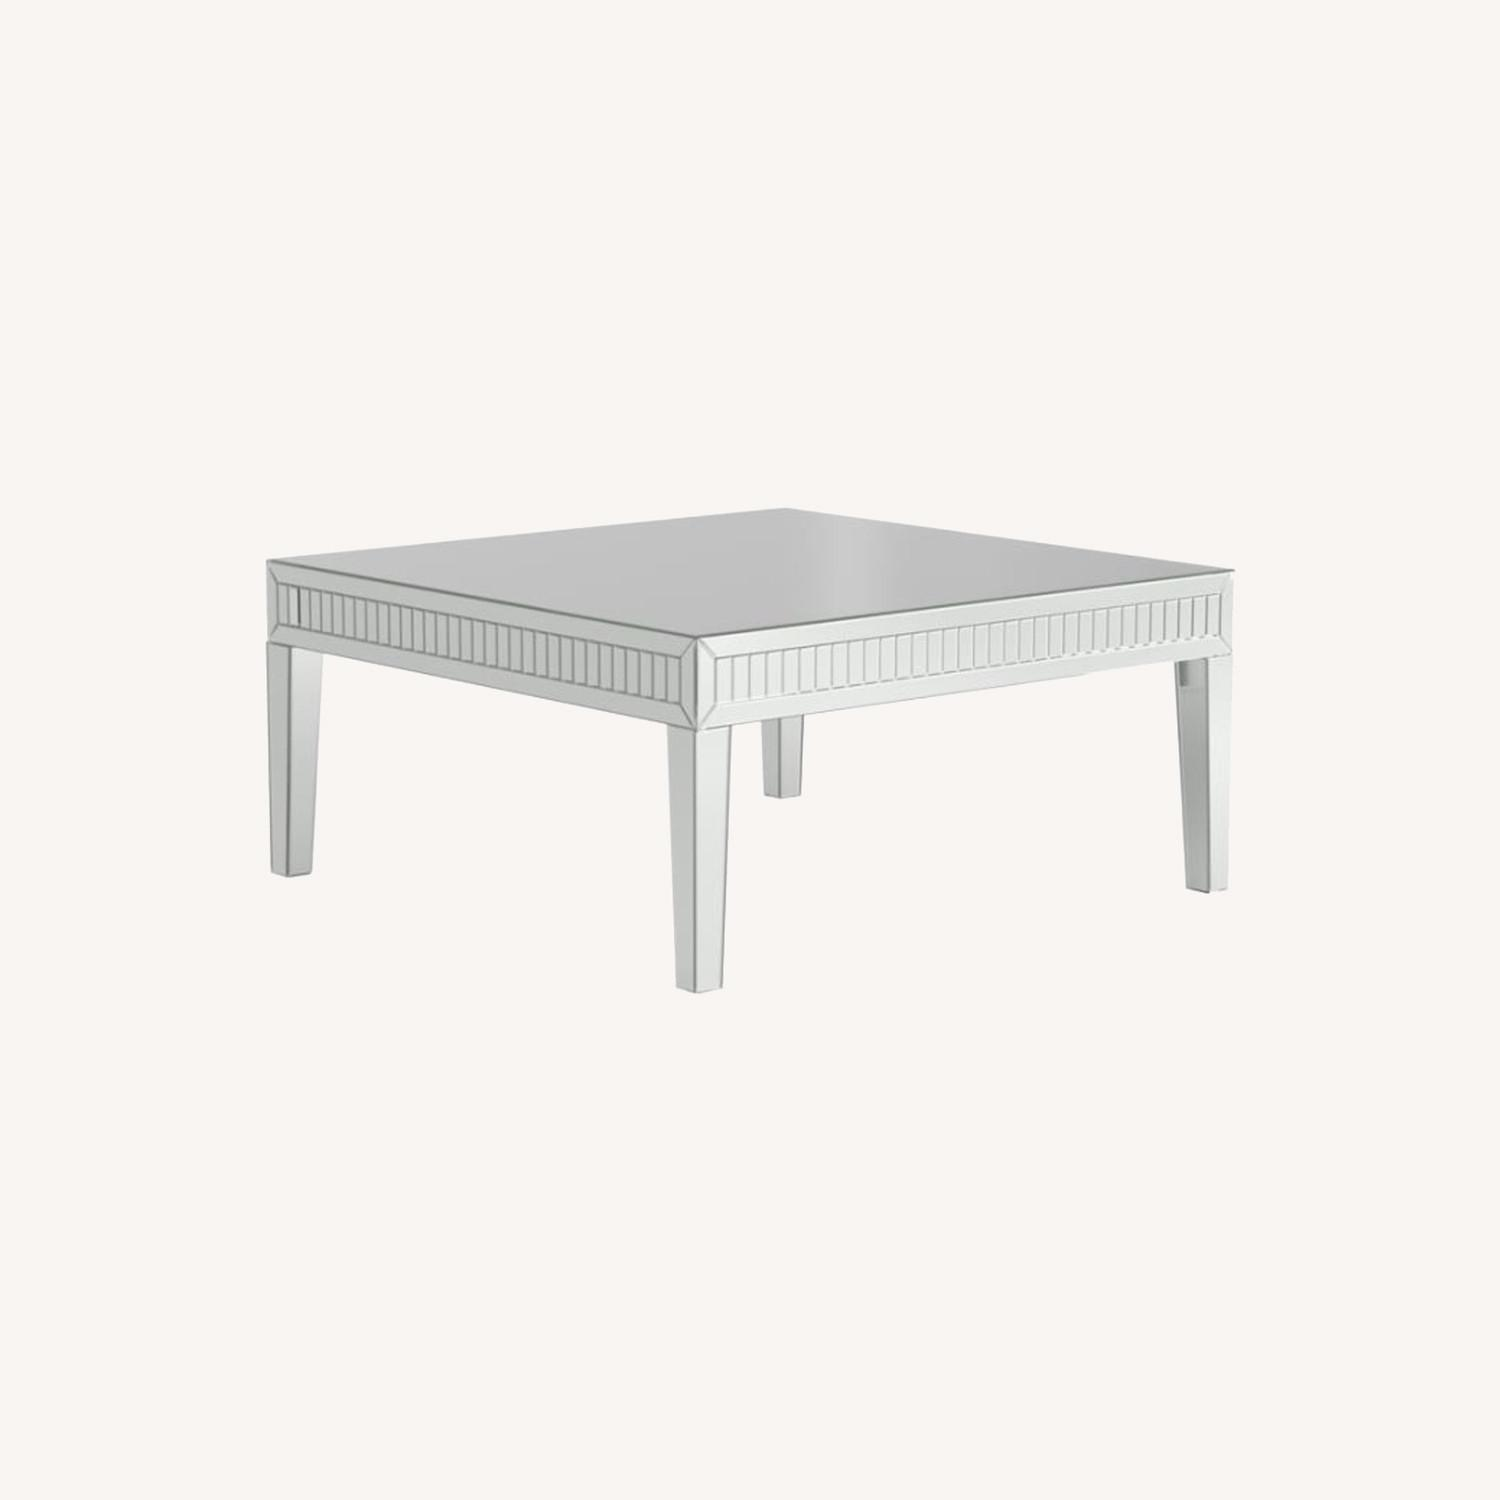 Coffee Table In Silver Finish W/ Mirror Tile Frame - image-5